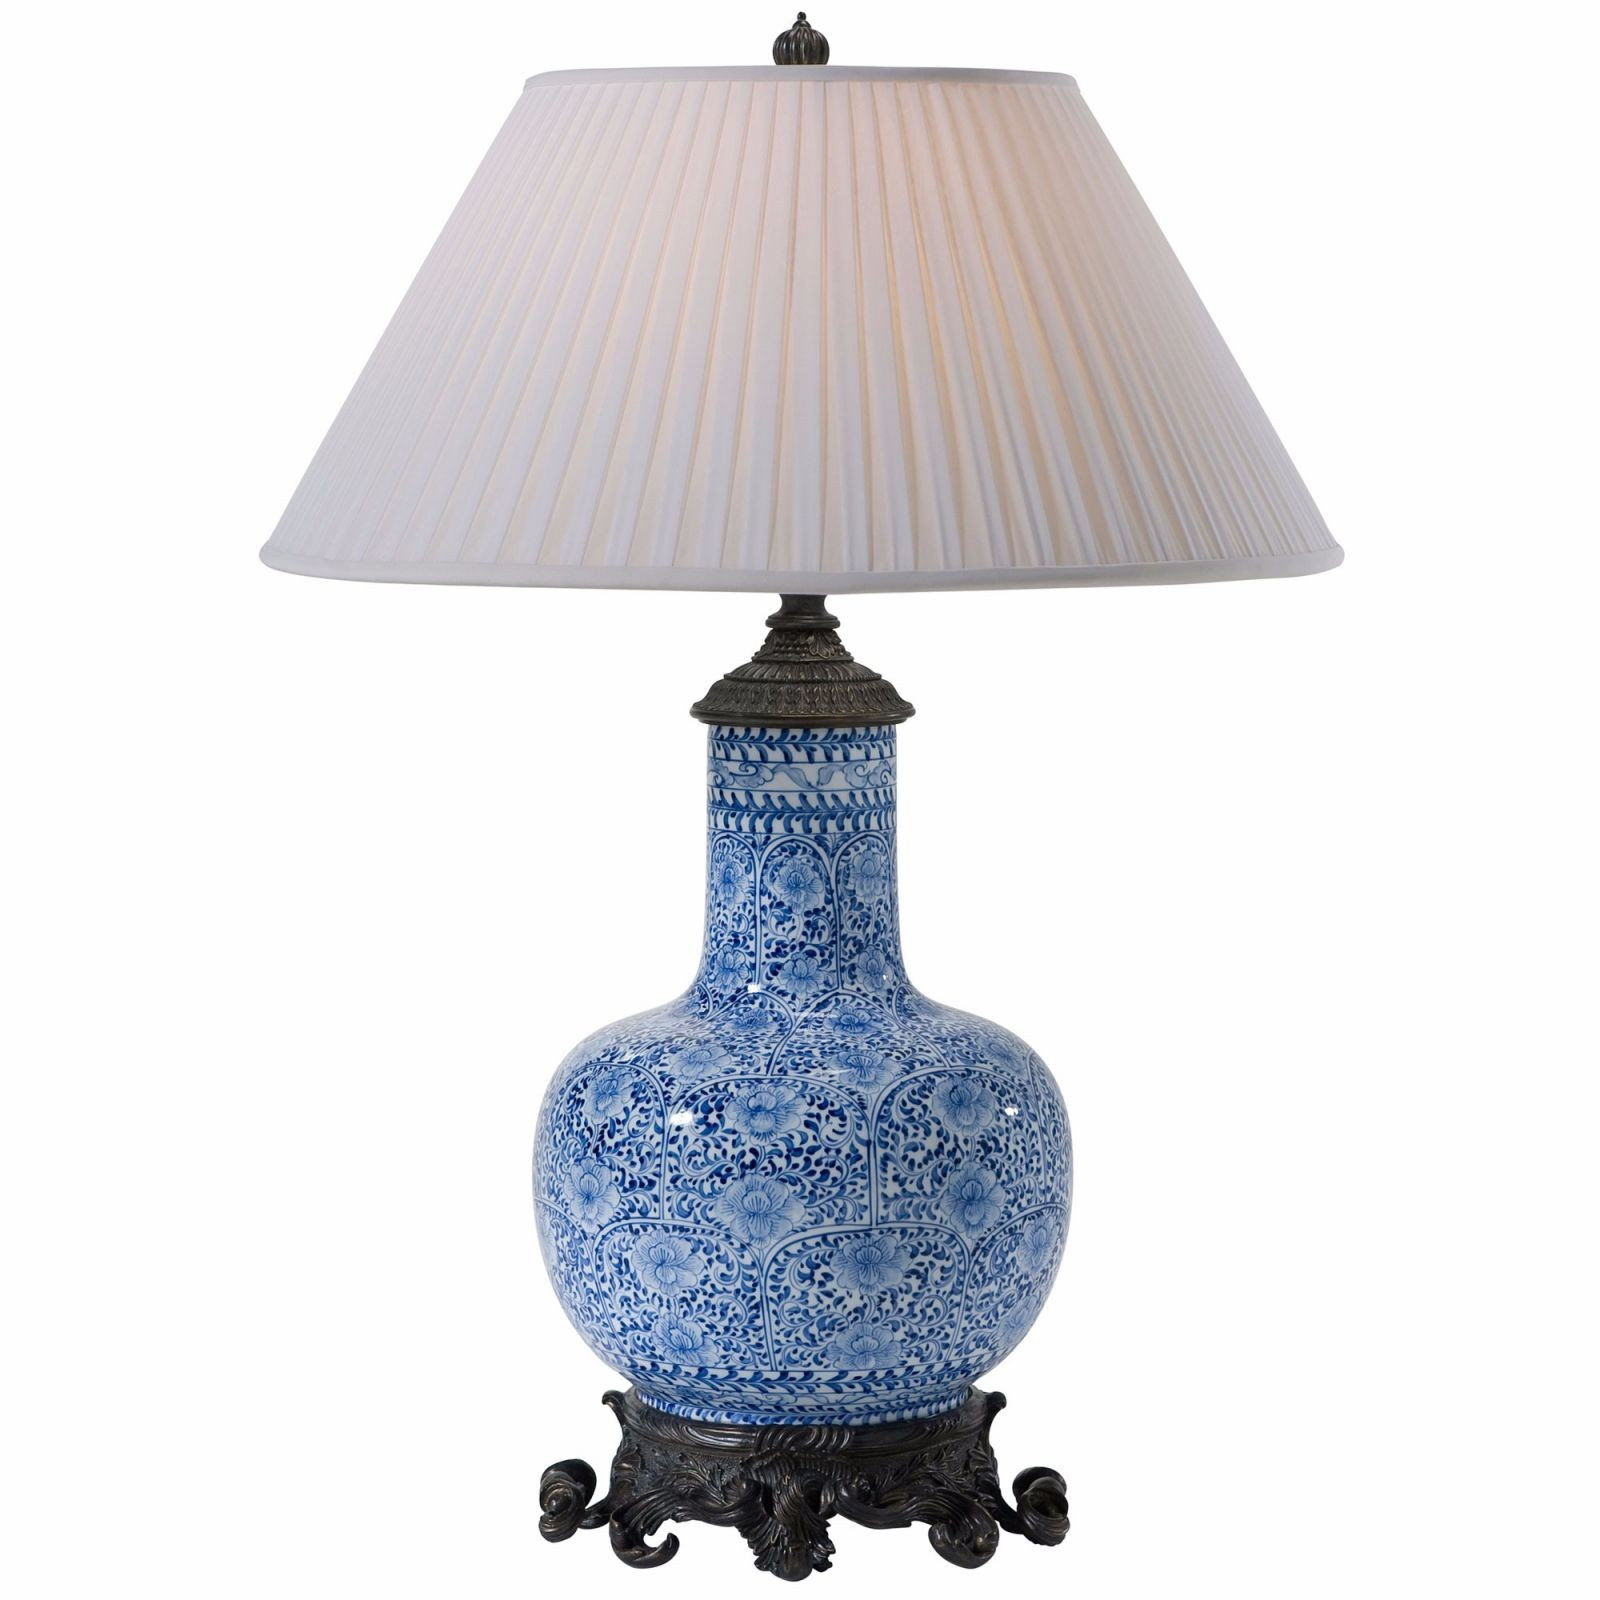 blue and white ceramic table lamp table lamps from brights of. Black Bedroom Furniture Sets. Home Design Ideas